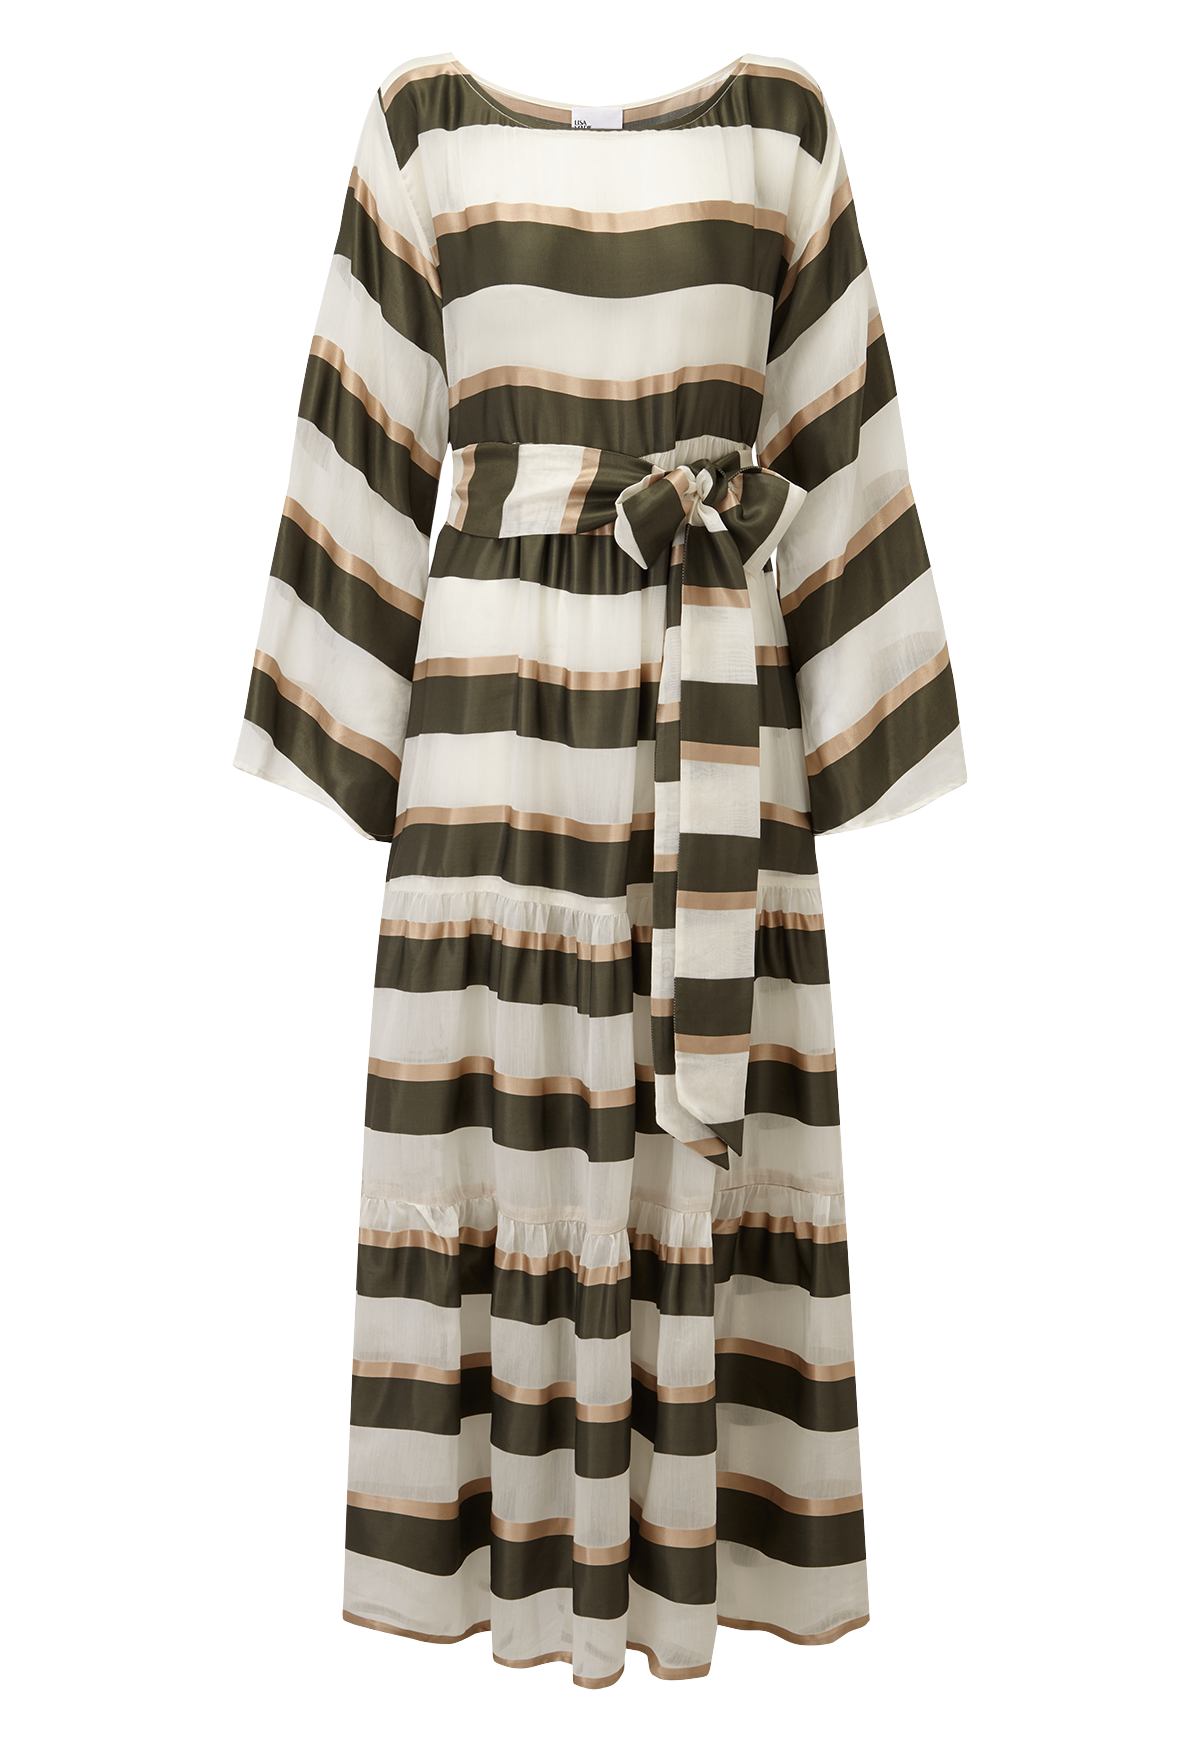 OLIVE AND GOLD STRIPED BOATNECK PEASANT DRESS